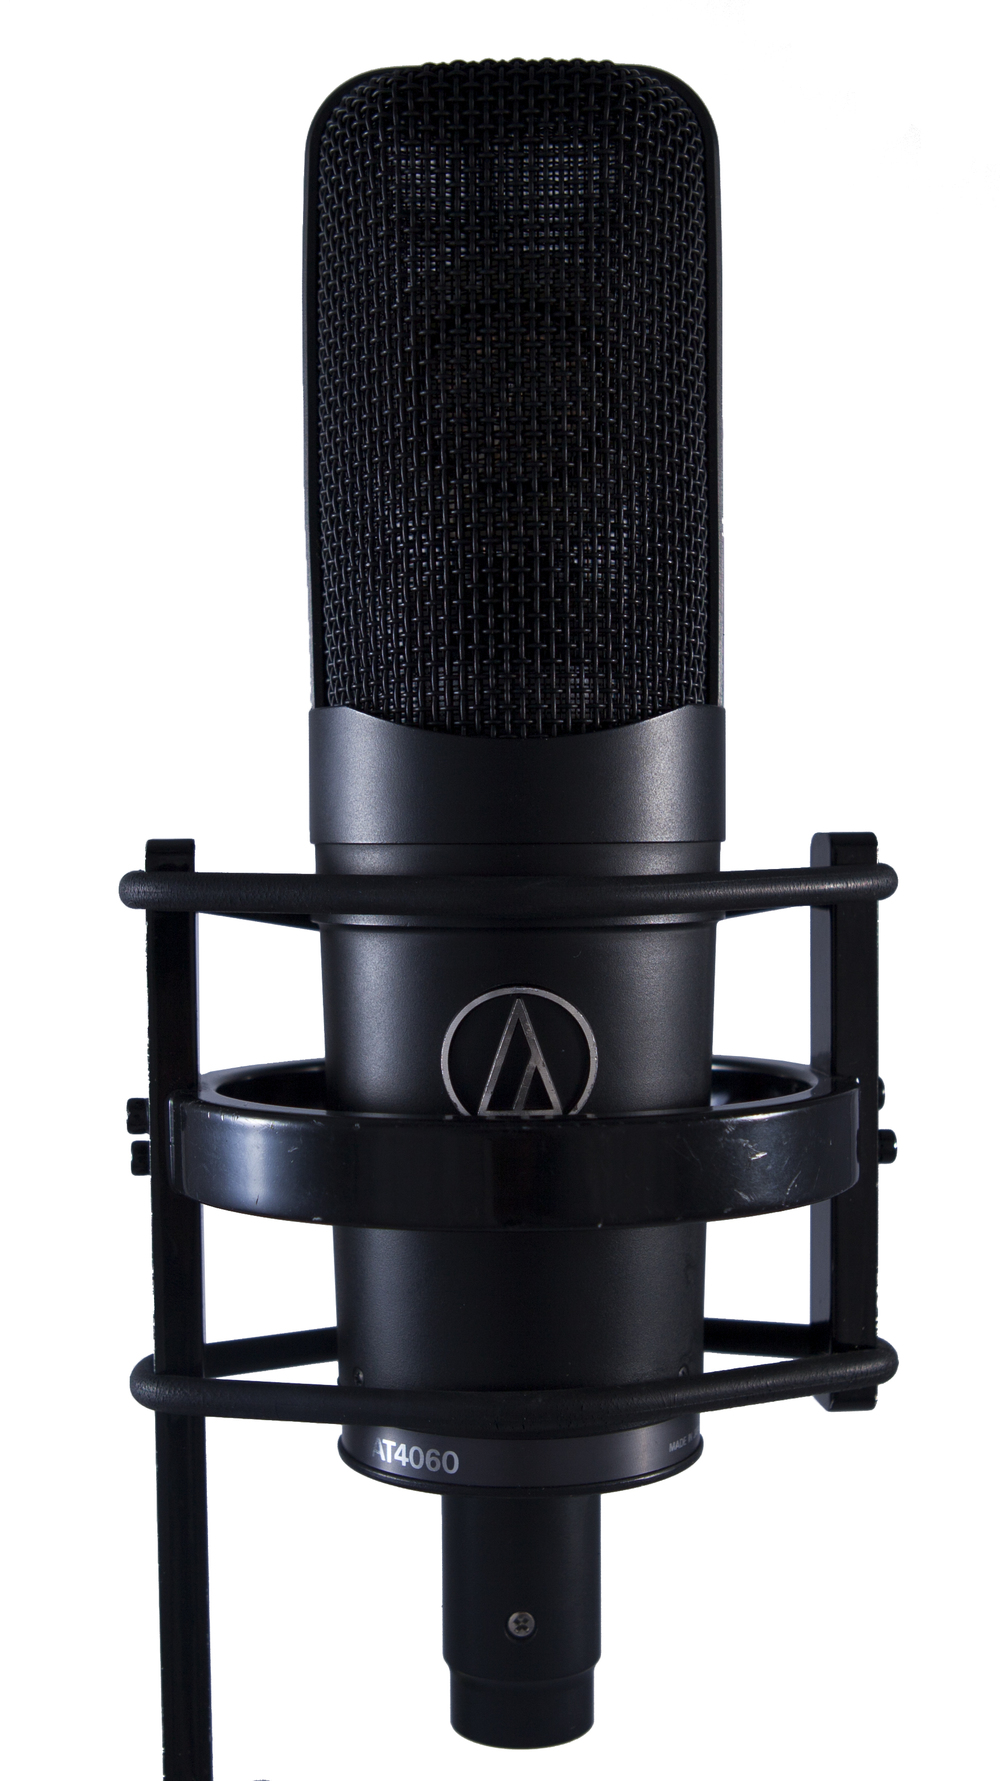 Audio Technica AT4060 .jpg